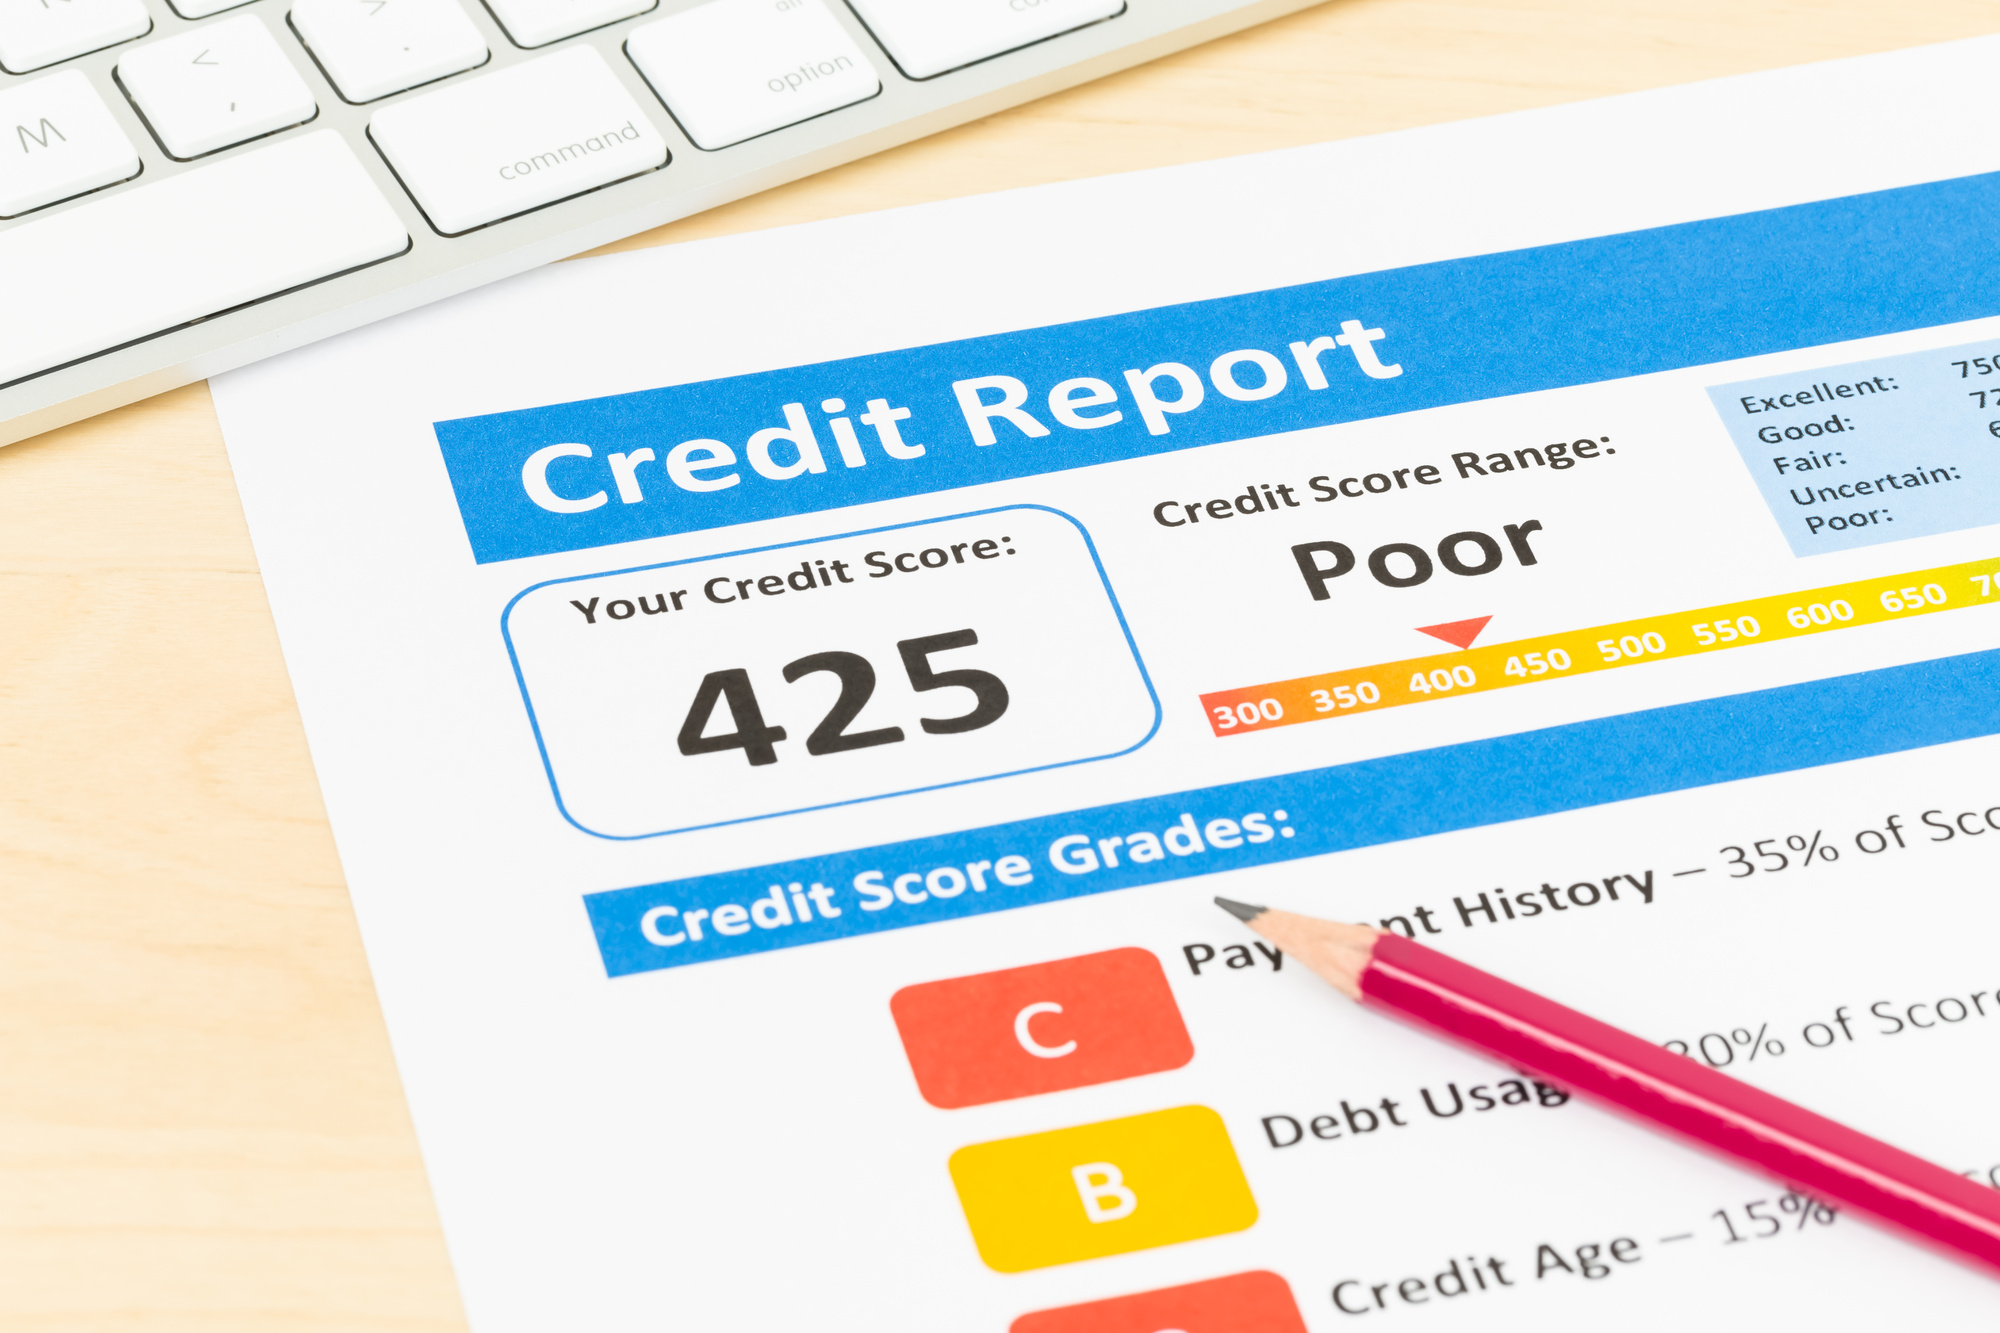 Did you commit some financial mistakes and you now need credit repair? Here are strategies to remove these negative credit report items.